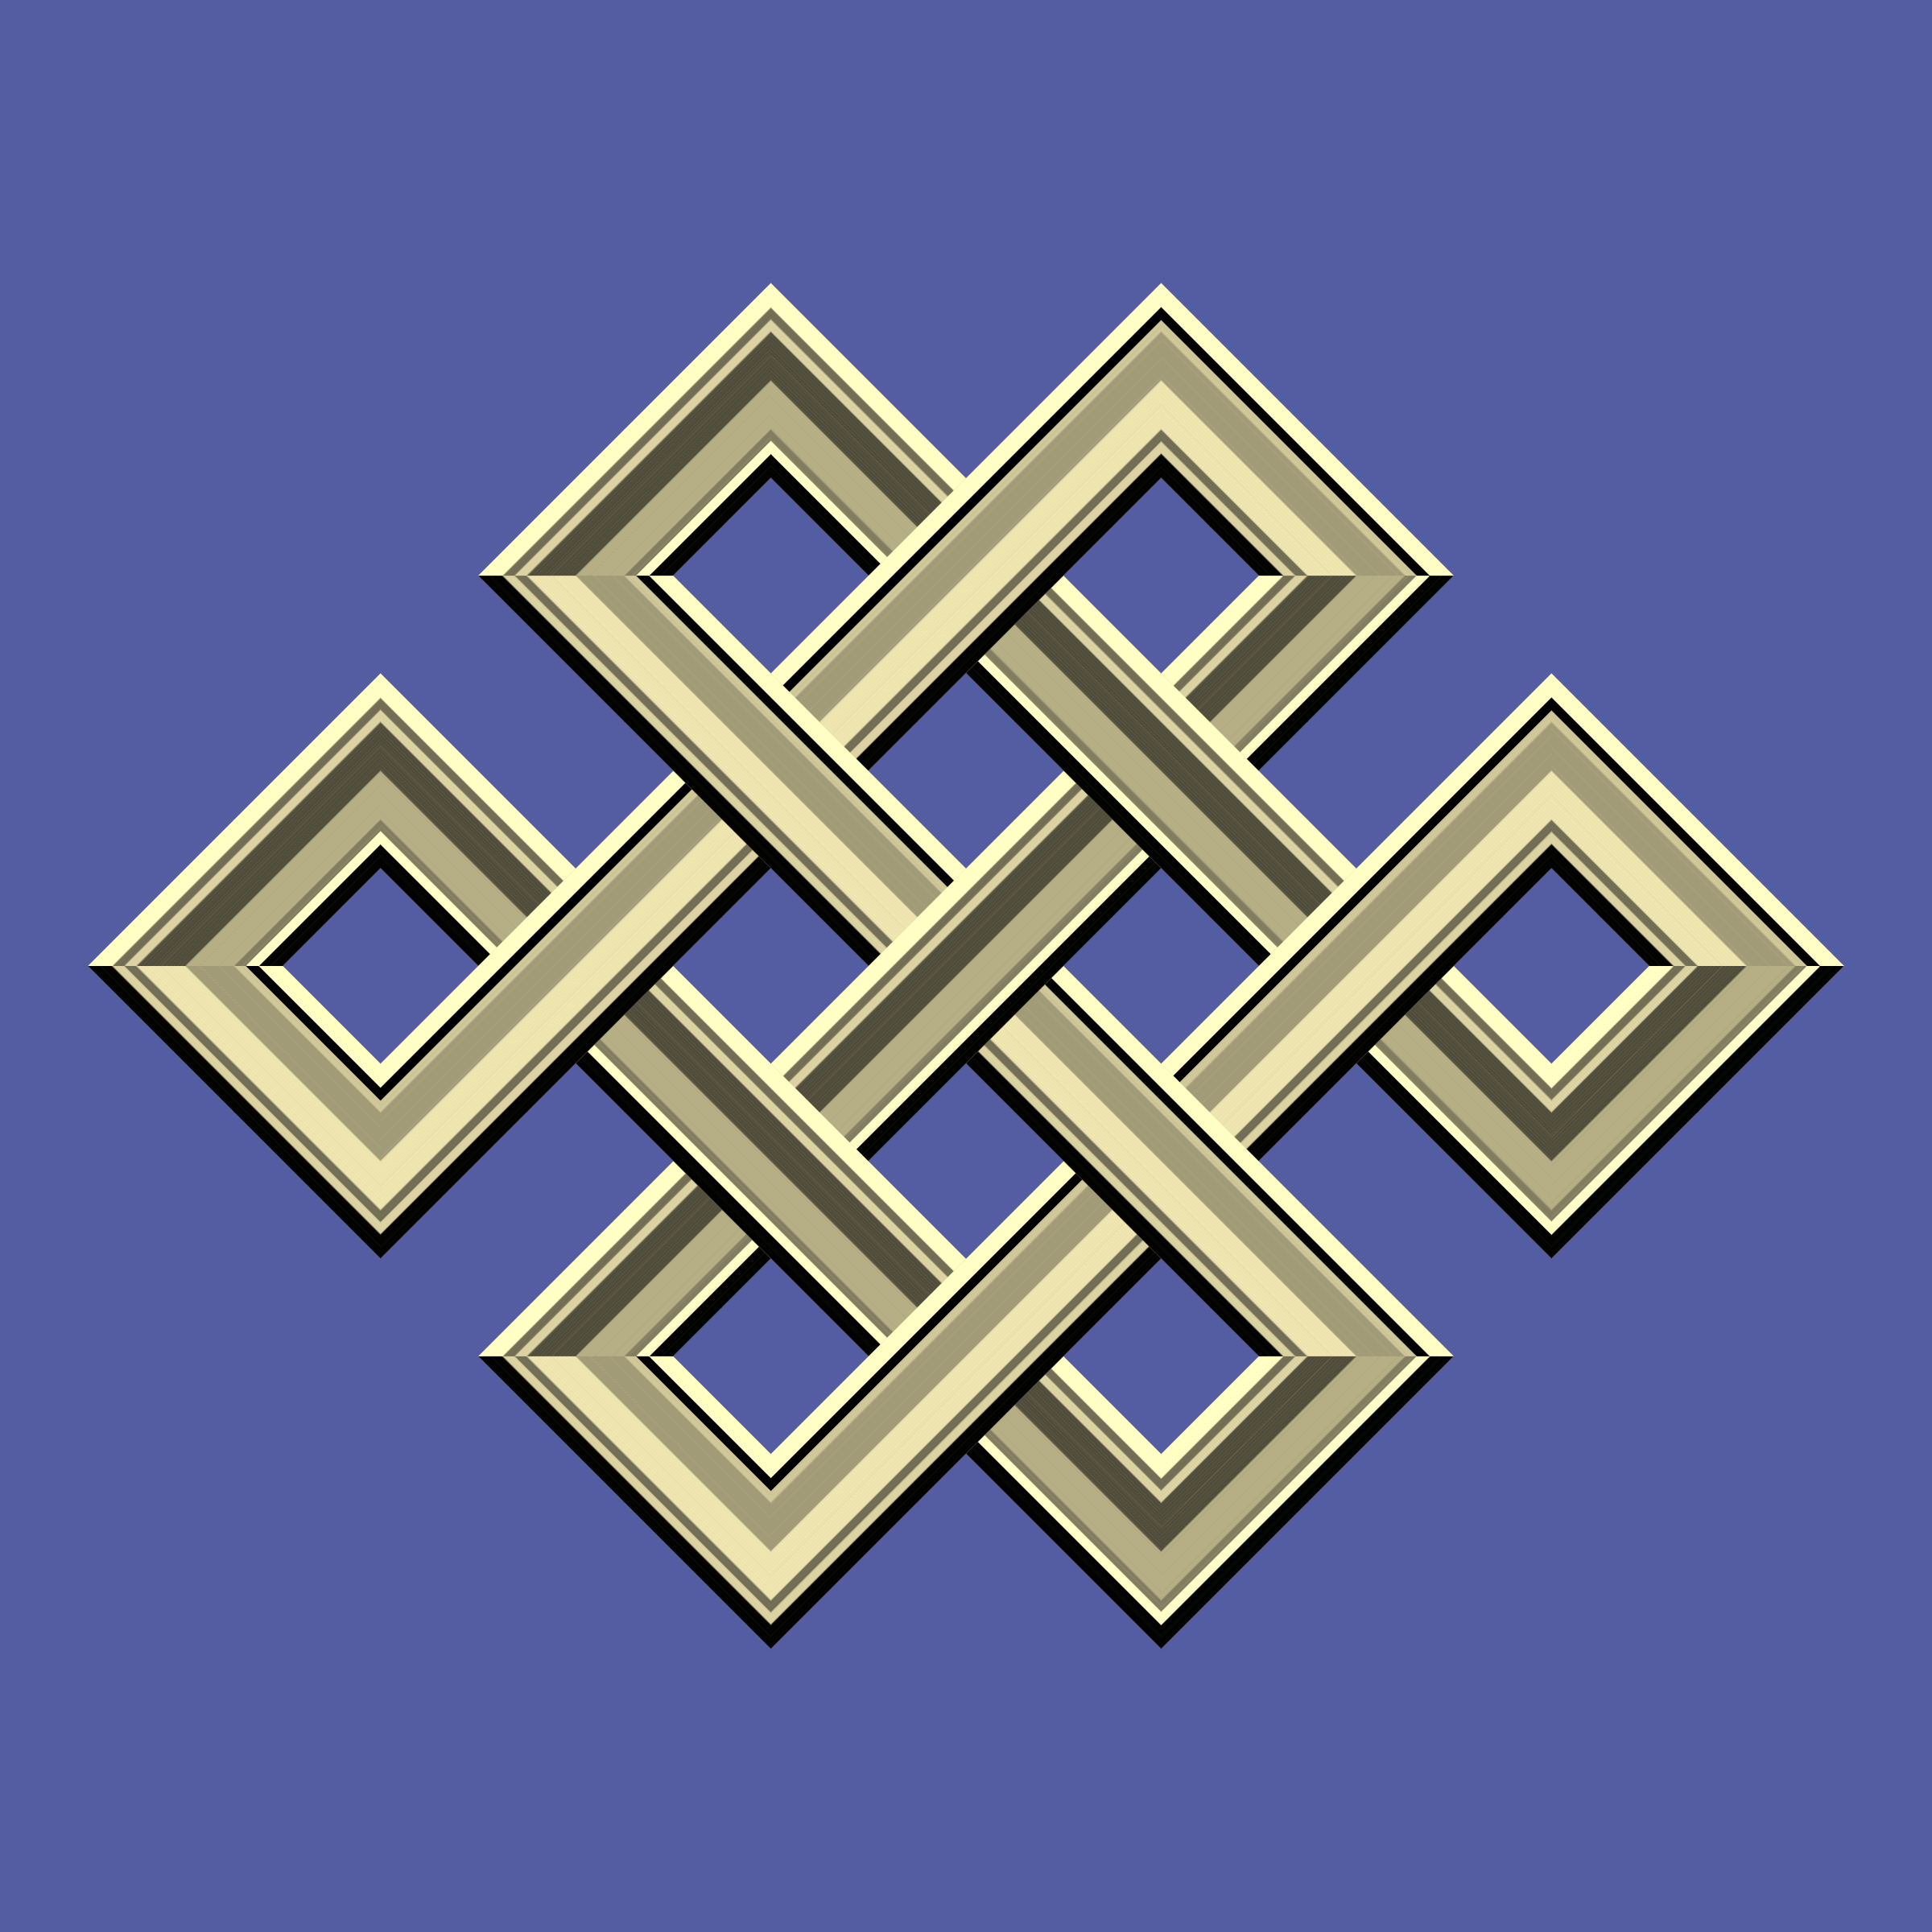 endless knot 3 by Lazur URH